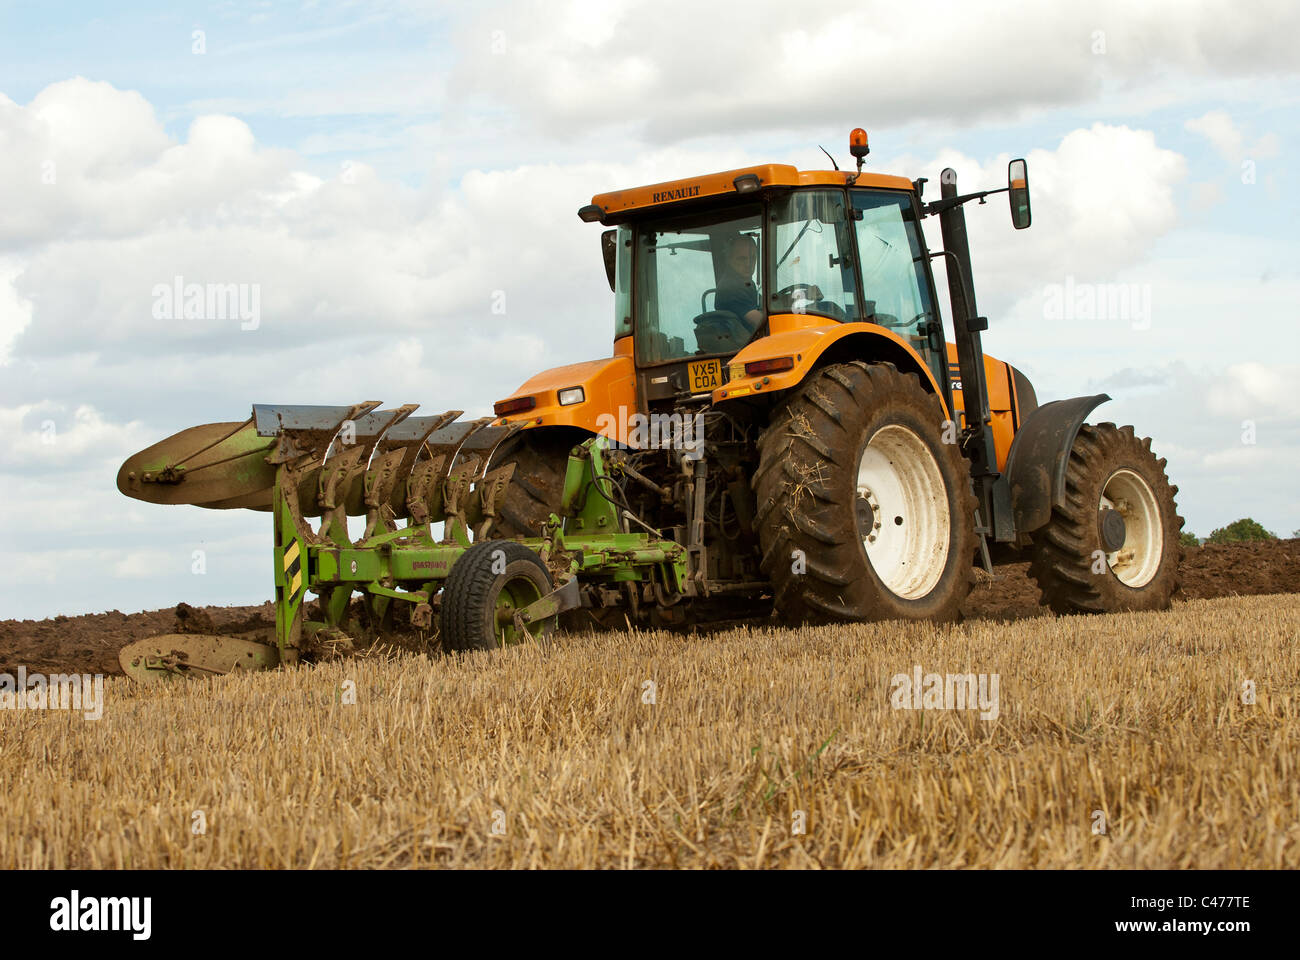 Renault Tractor ploughing a field after harvesting is completed - Stock Image